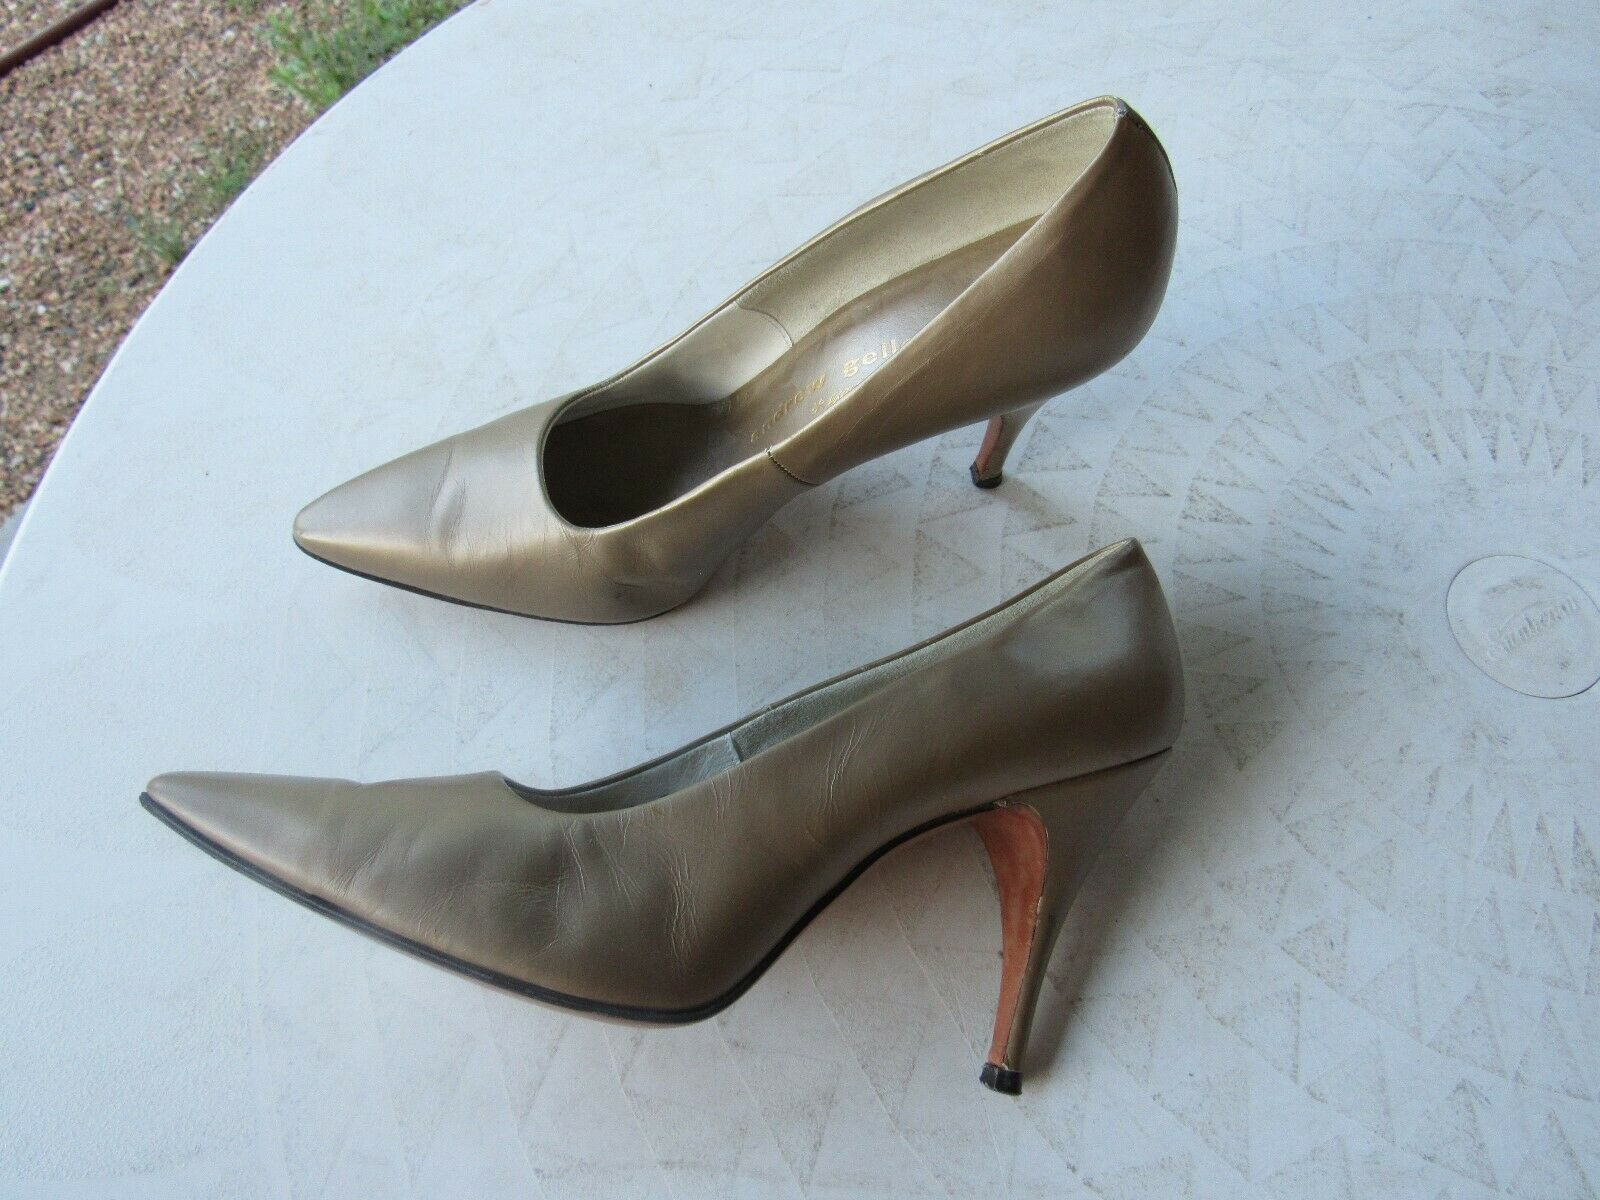 Vintage Muted Gold Leather Pumps by Andrew Geller Size 7-7.5